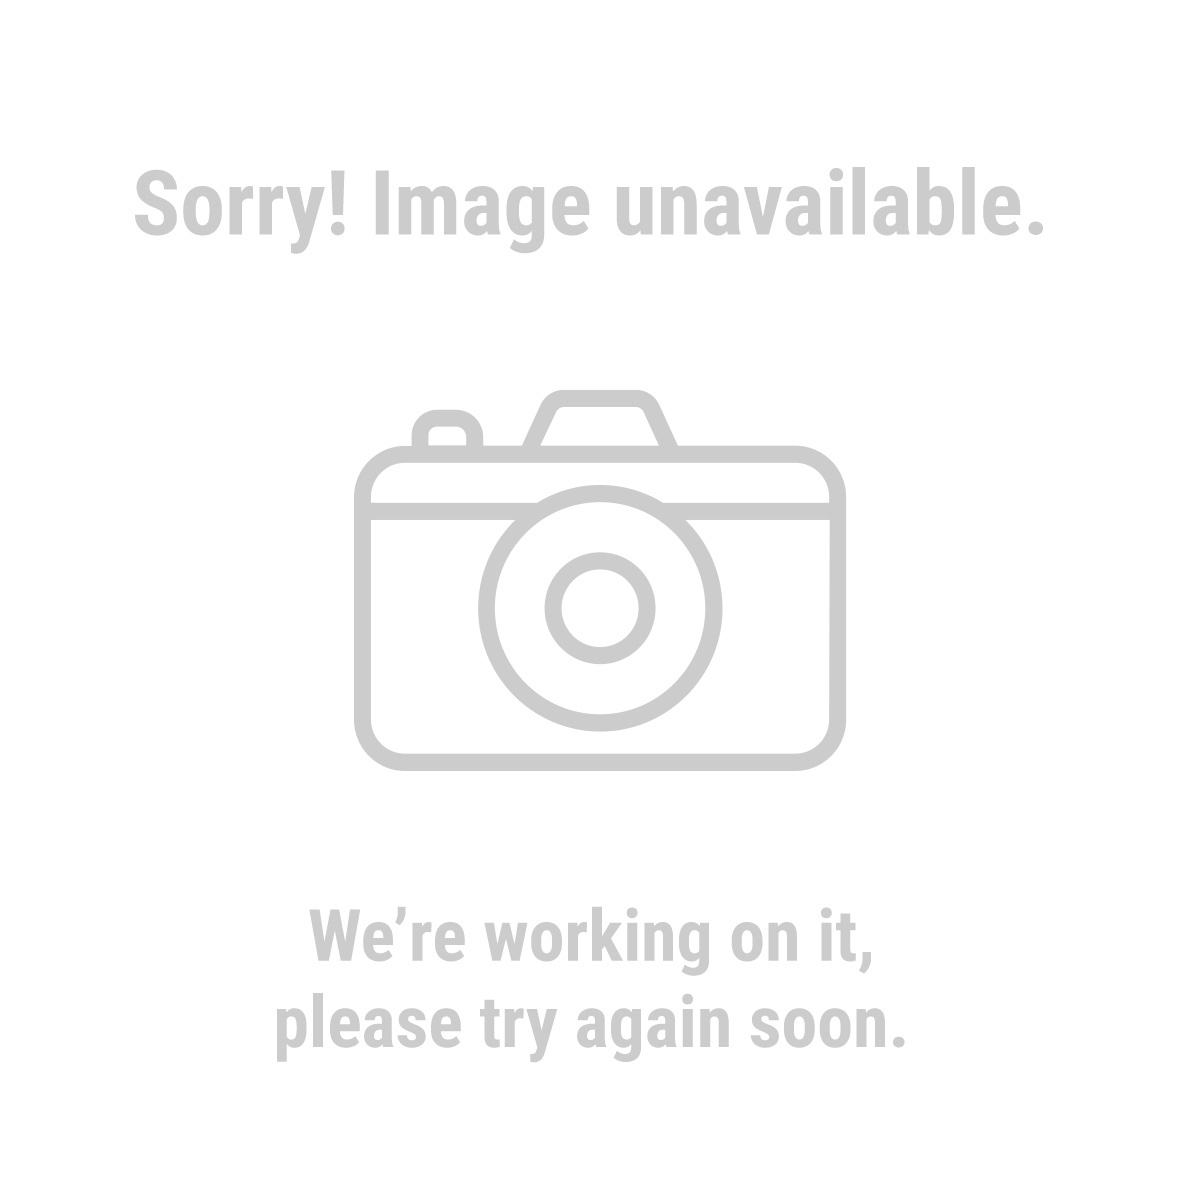 Pittsburgh® 97070 12 Piece File and Rasp Set